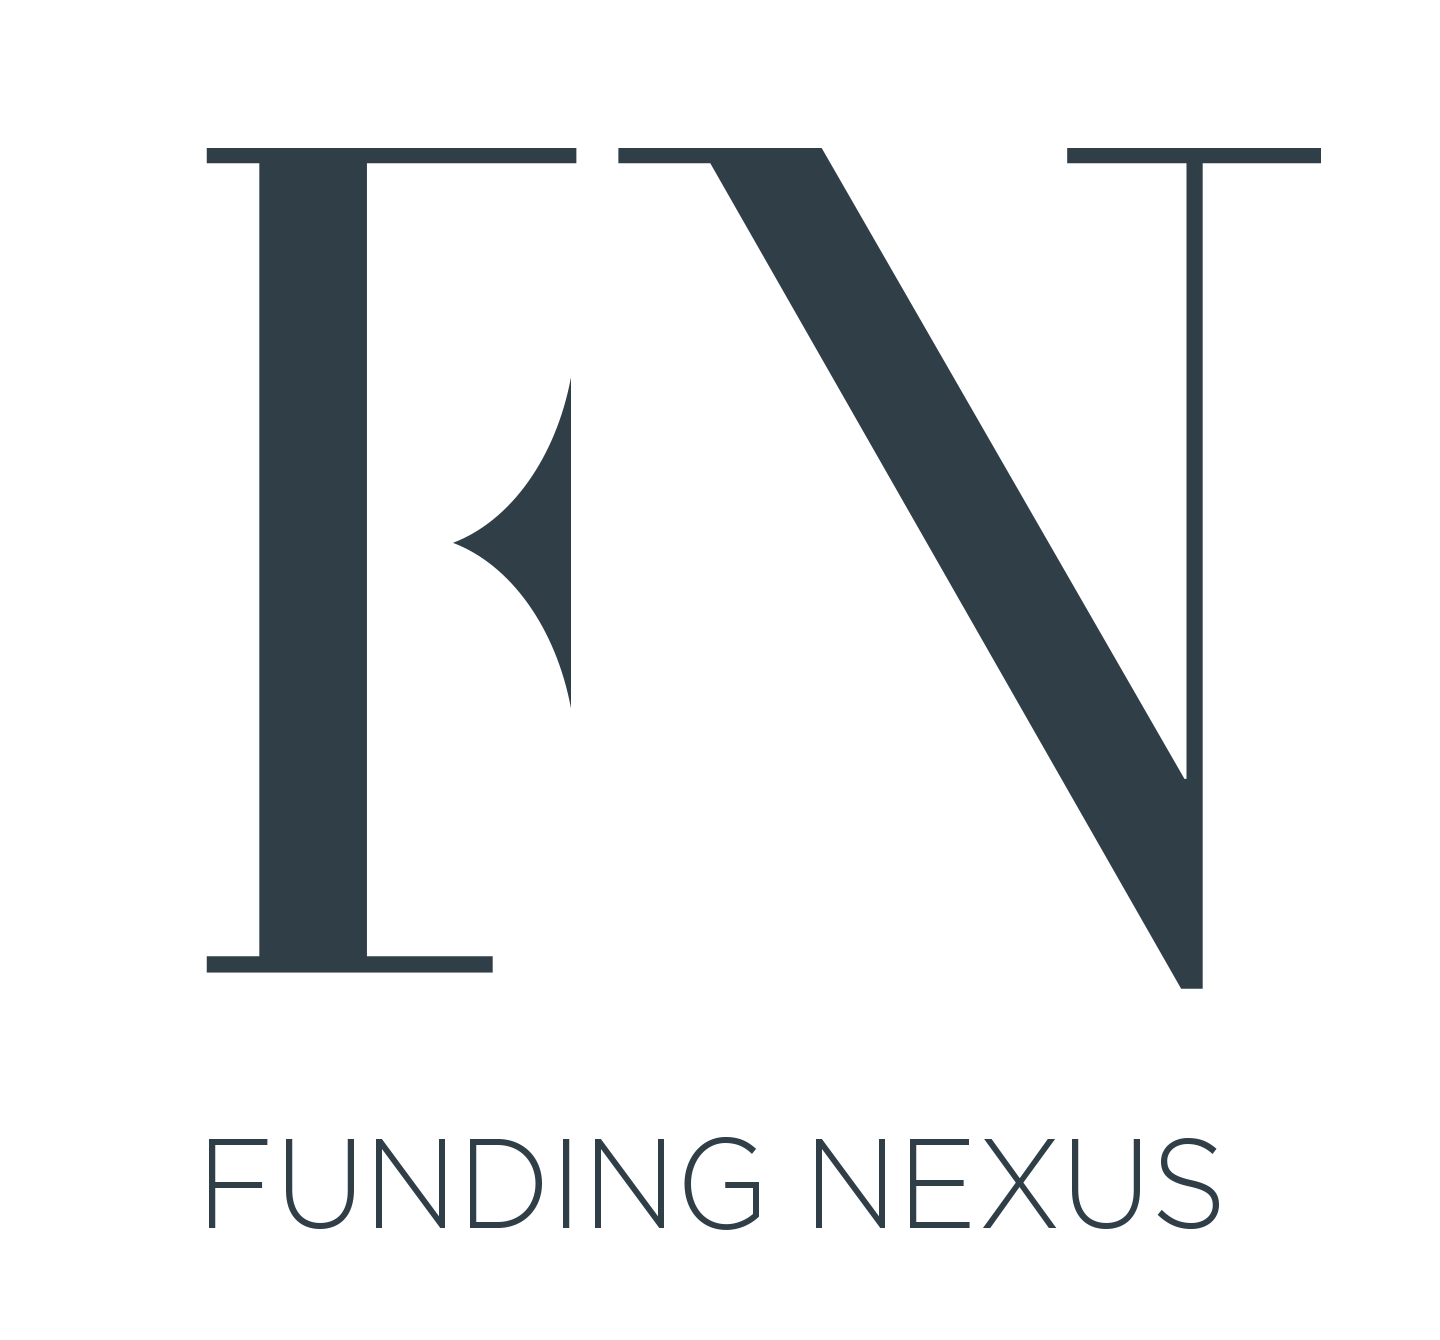 The Funding Nexus